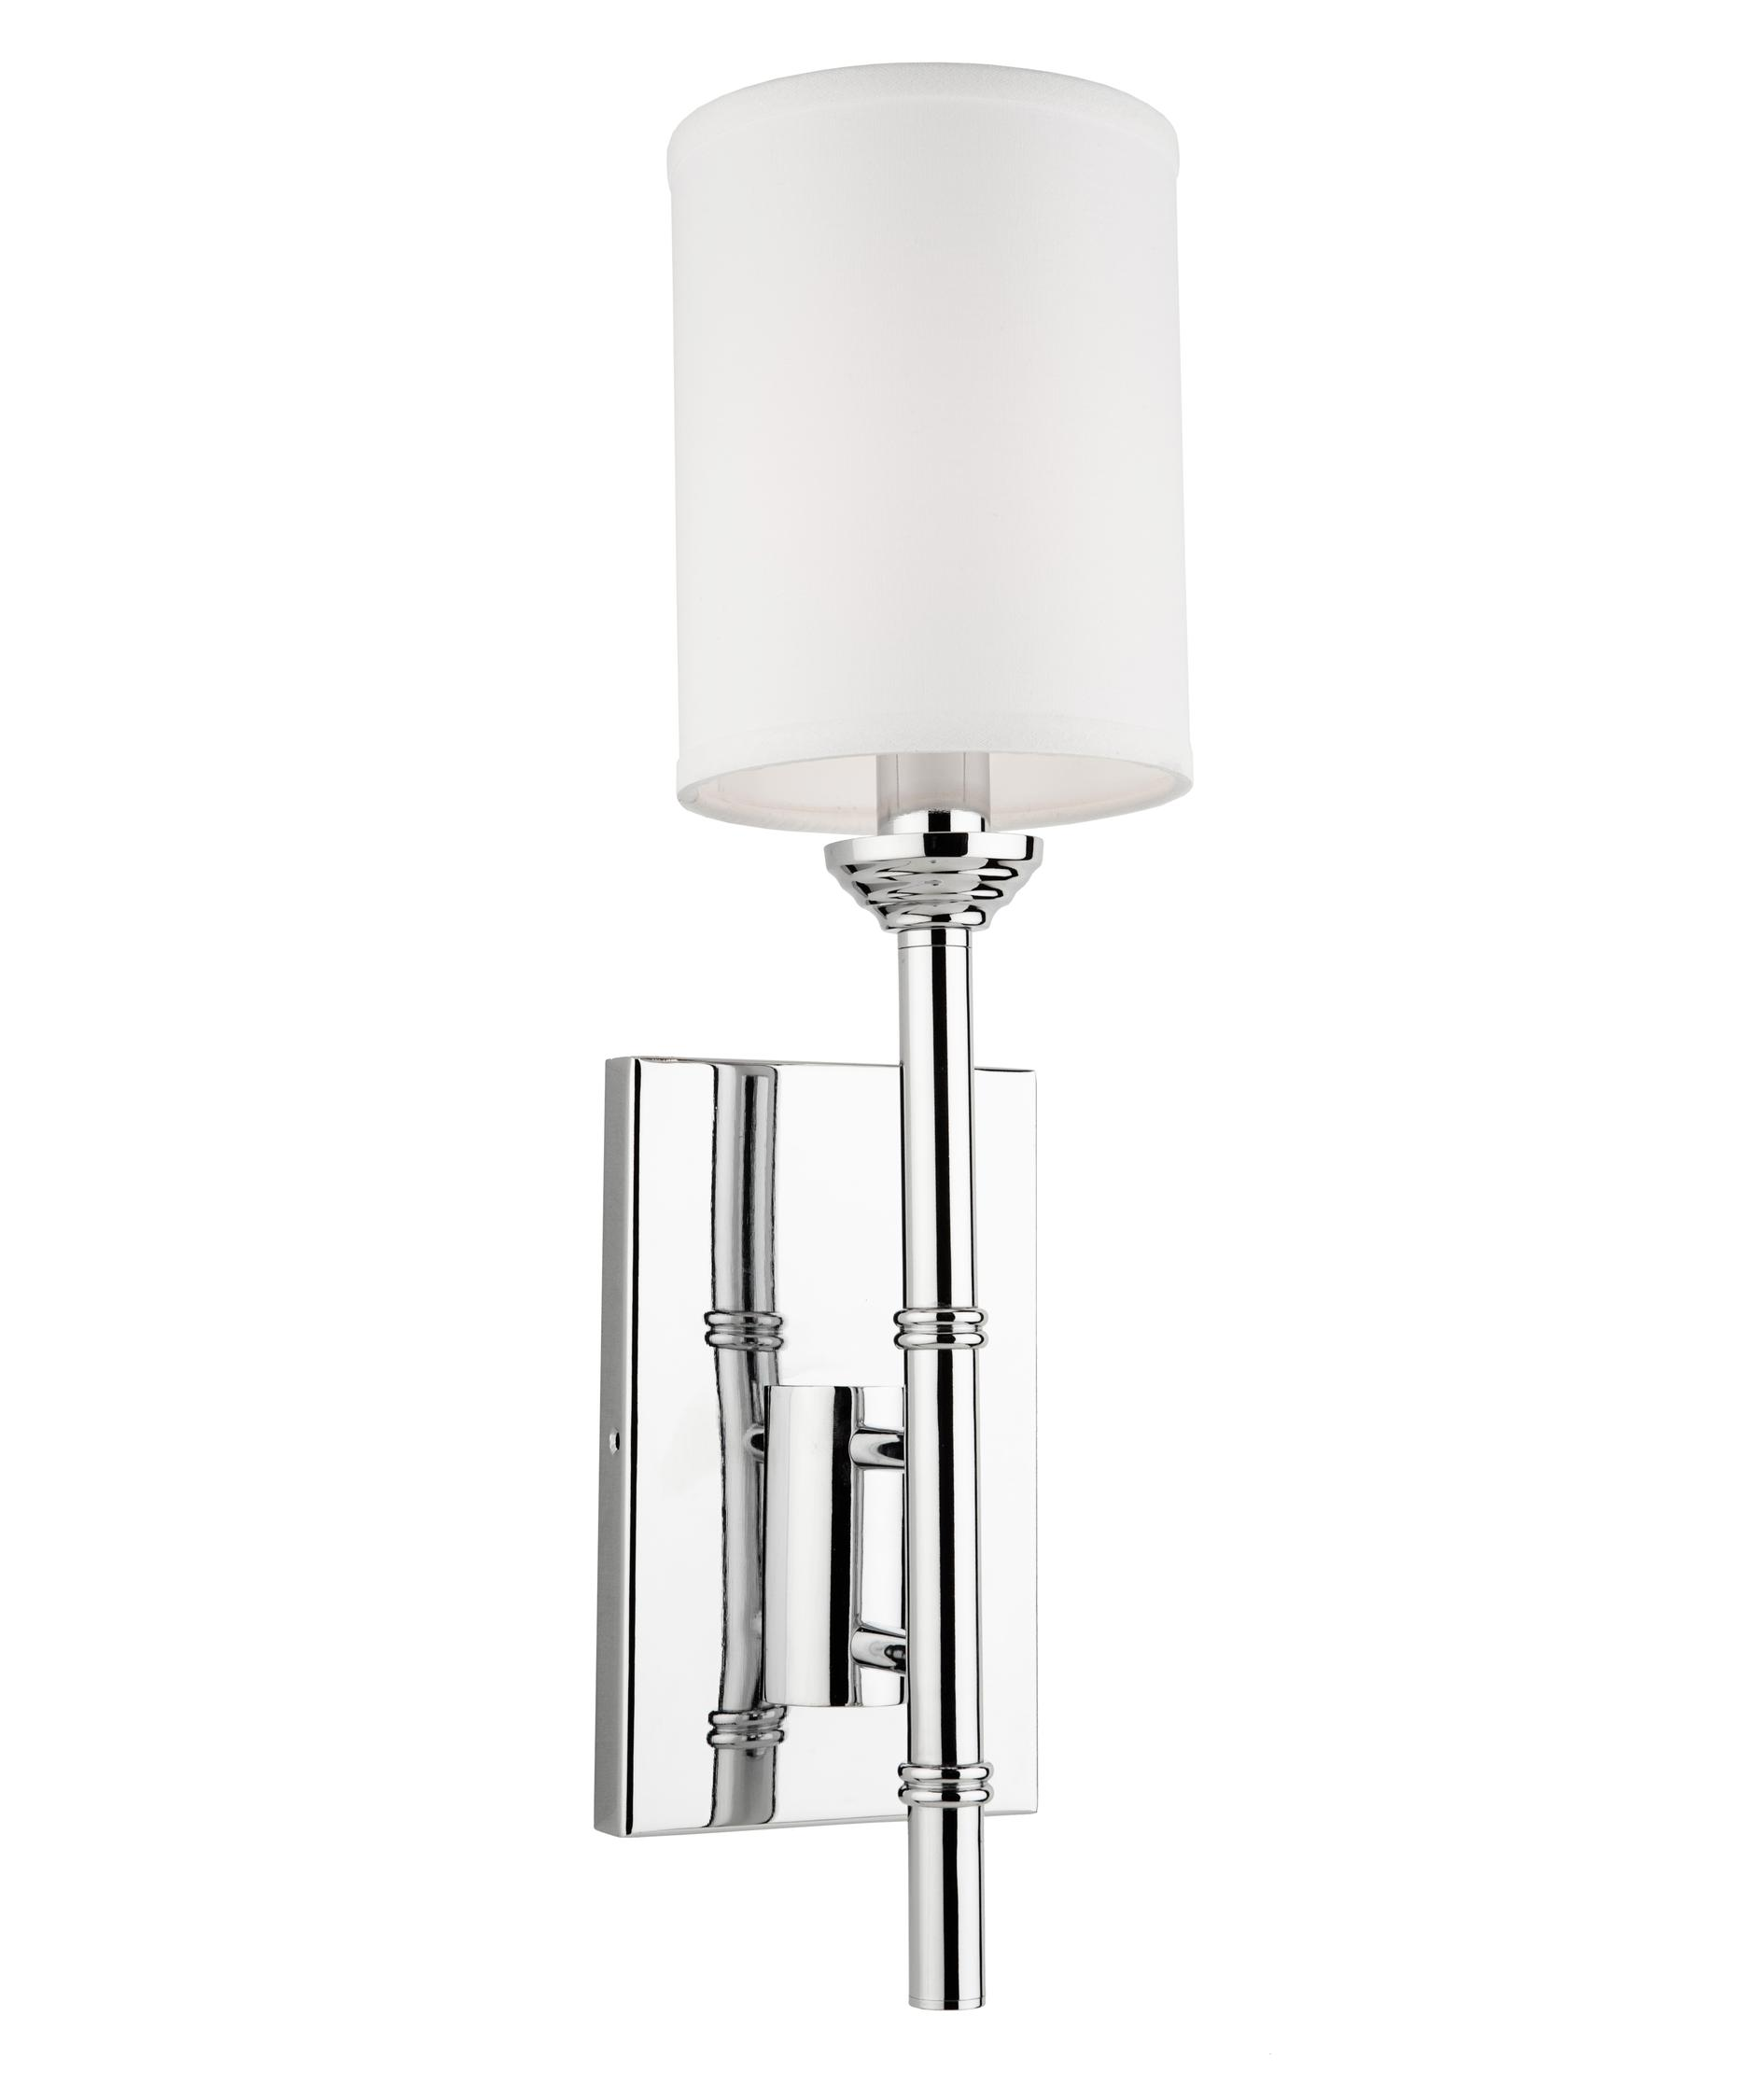 Steven And Chris Sc421 Gramercy Park 5 Inch Wall Sconce